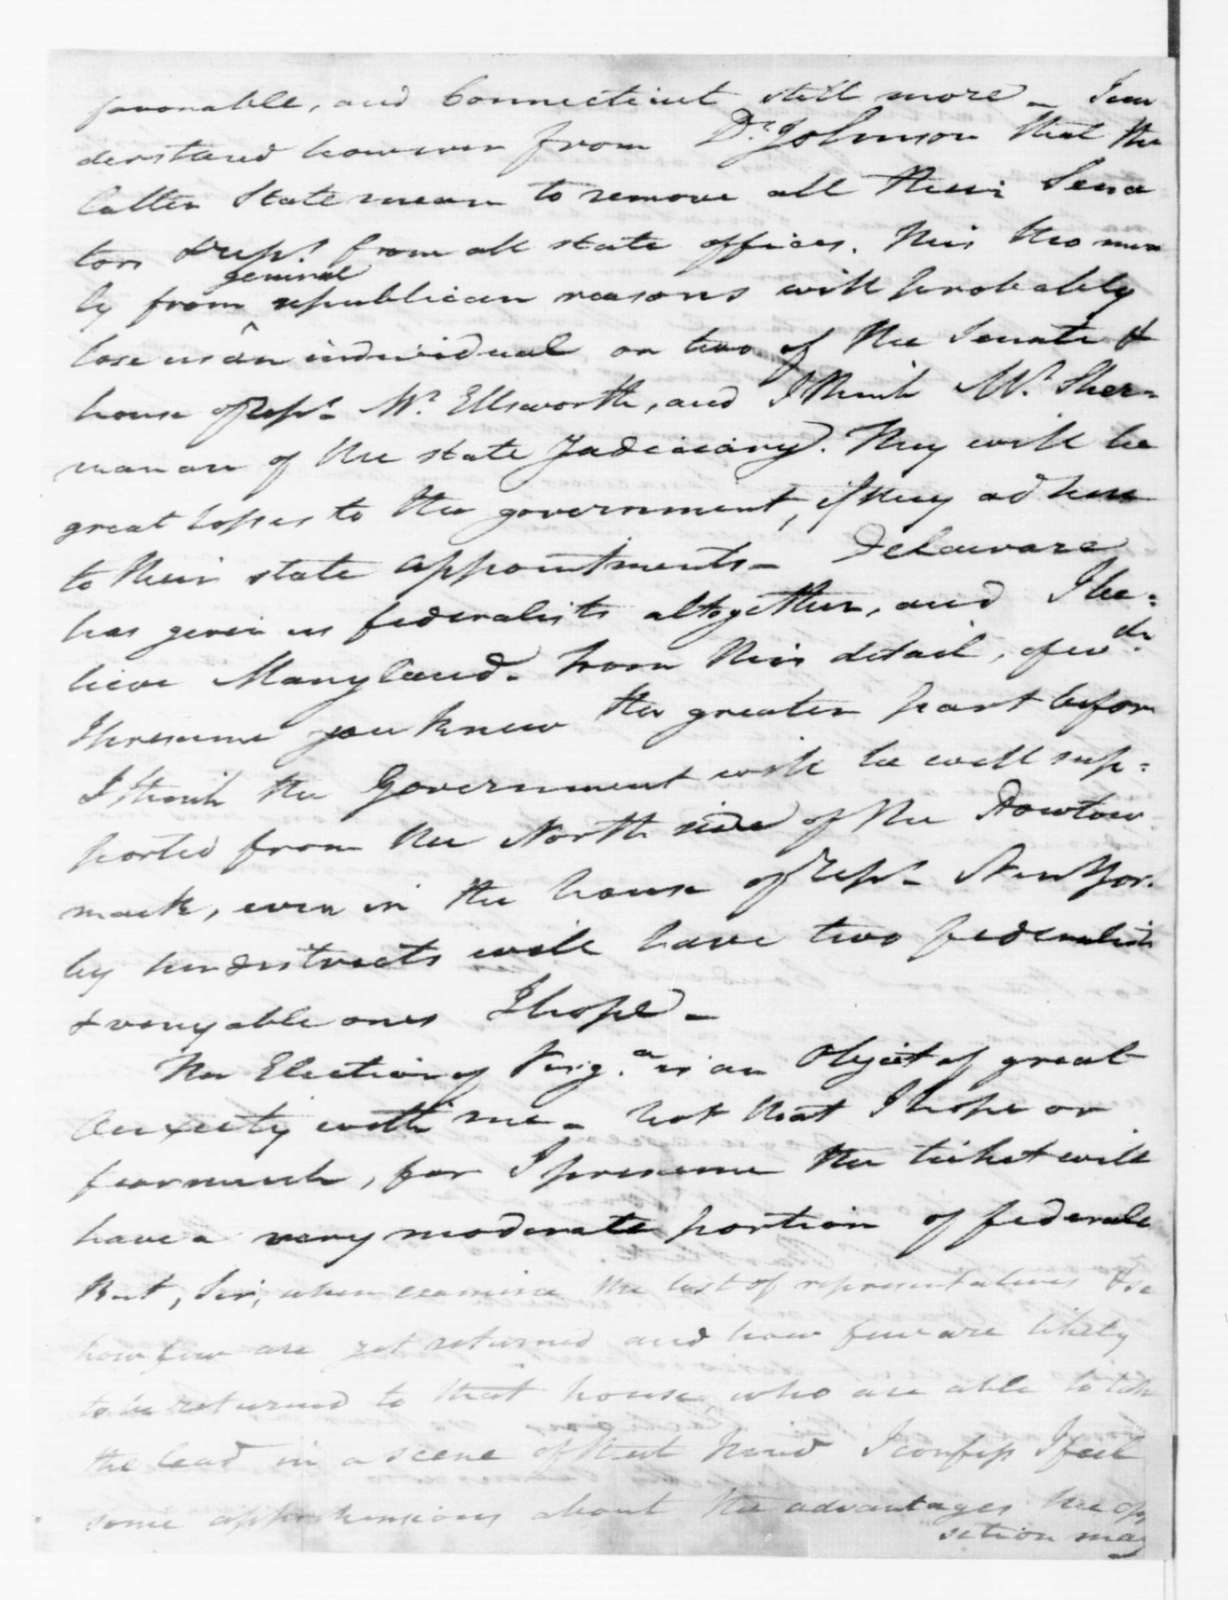 Tench Coxe to James Madison, January 29, 1789.